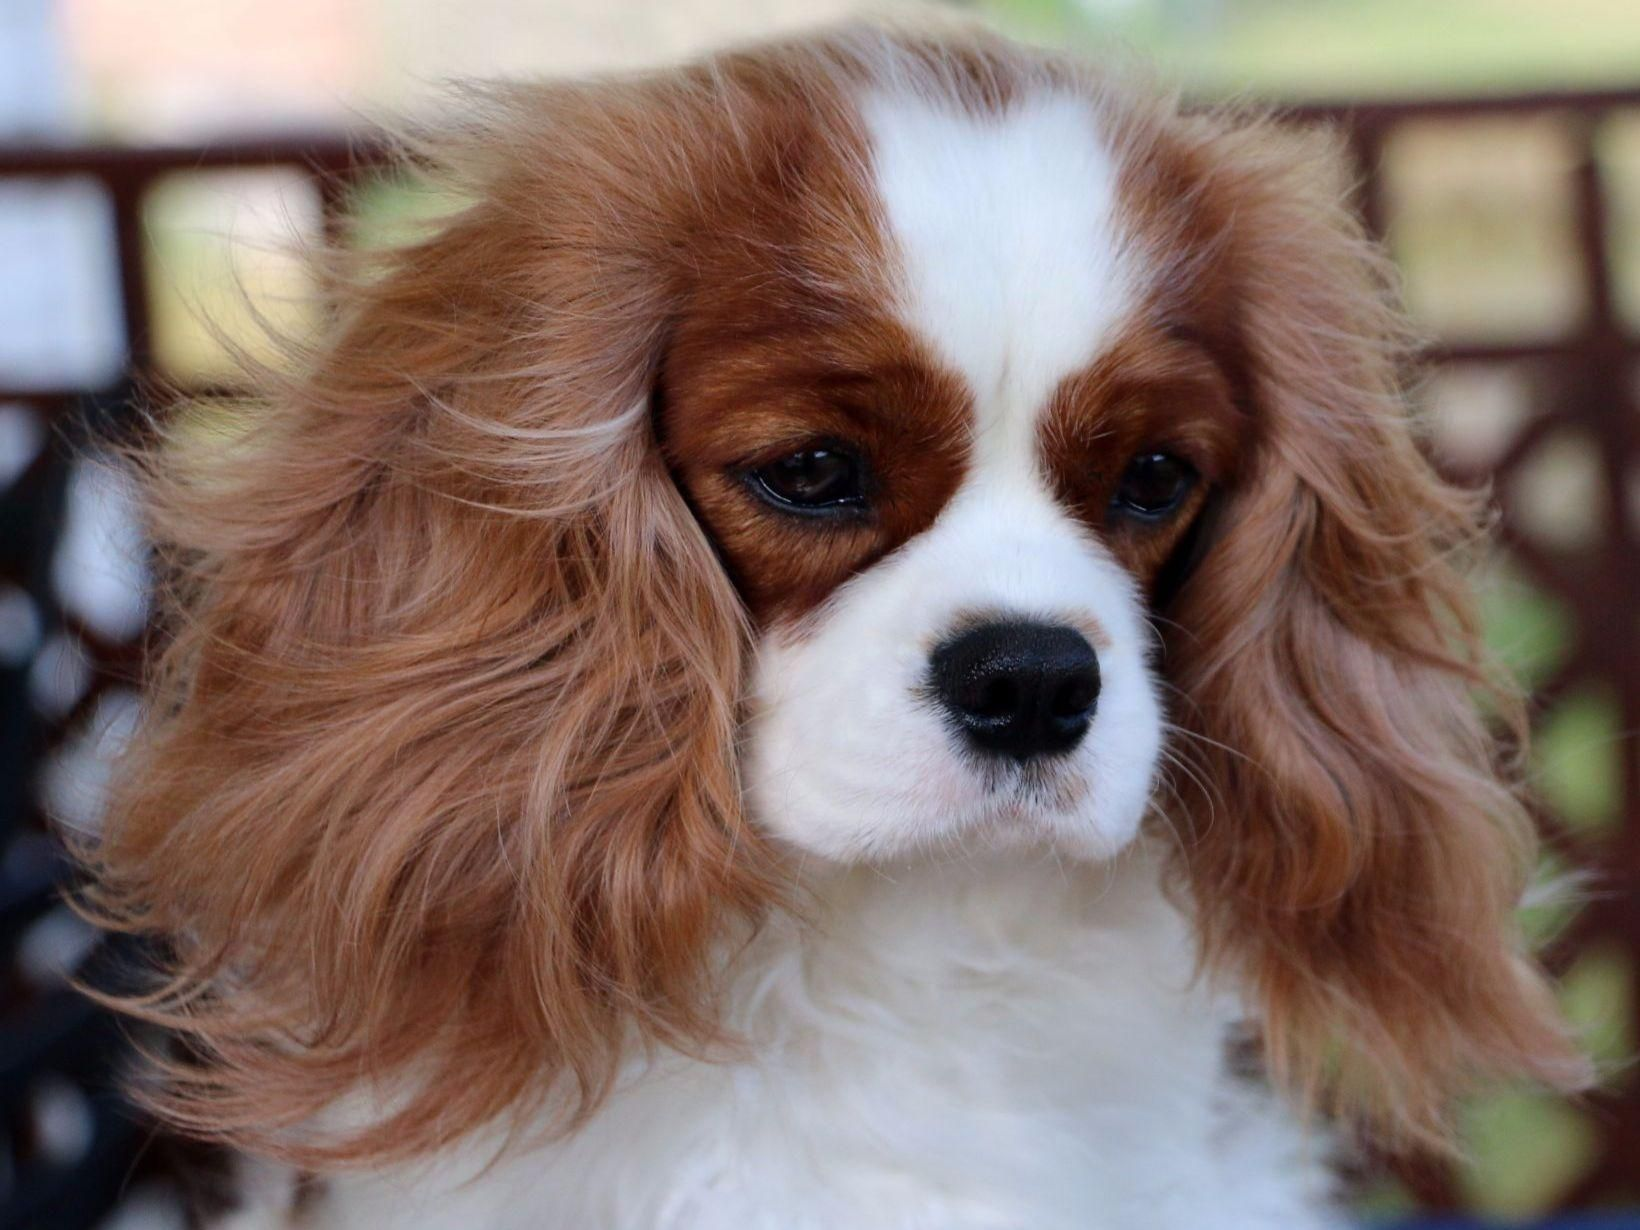 Suzanne Oliver Has Cavalier King Charles Spaniel Puppies For Sale In Ringgold G Cavalier King Charles Dog King Charles Cavalier Spaniel Puppy King Charles Dog